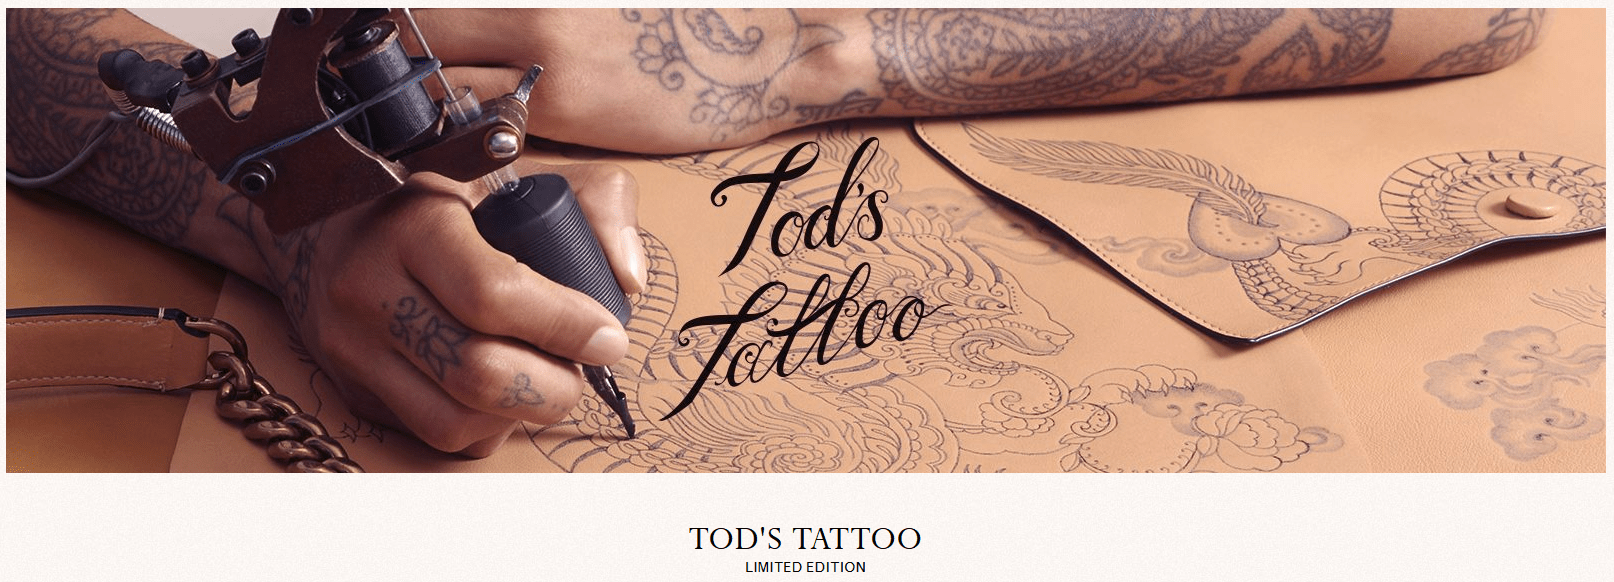 Tod's comarketing Tattoo